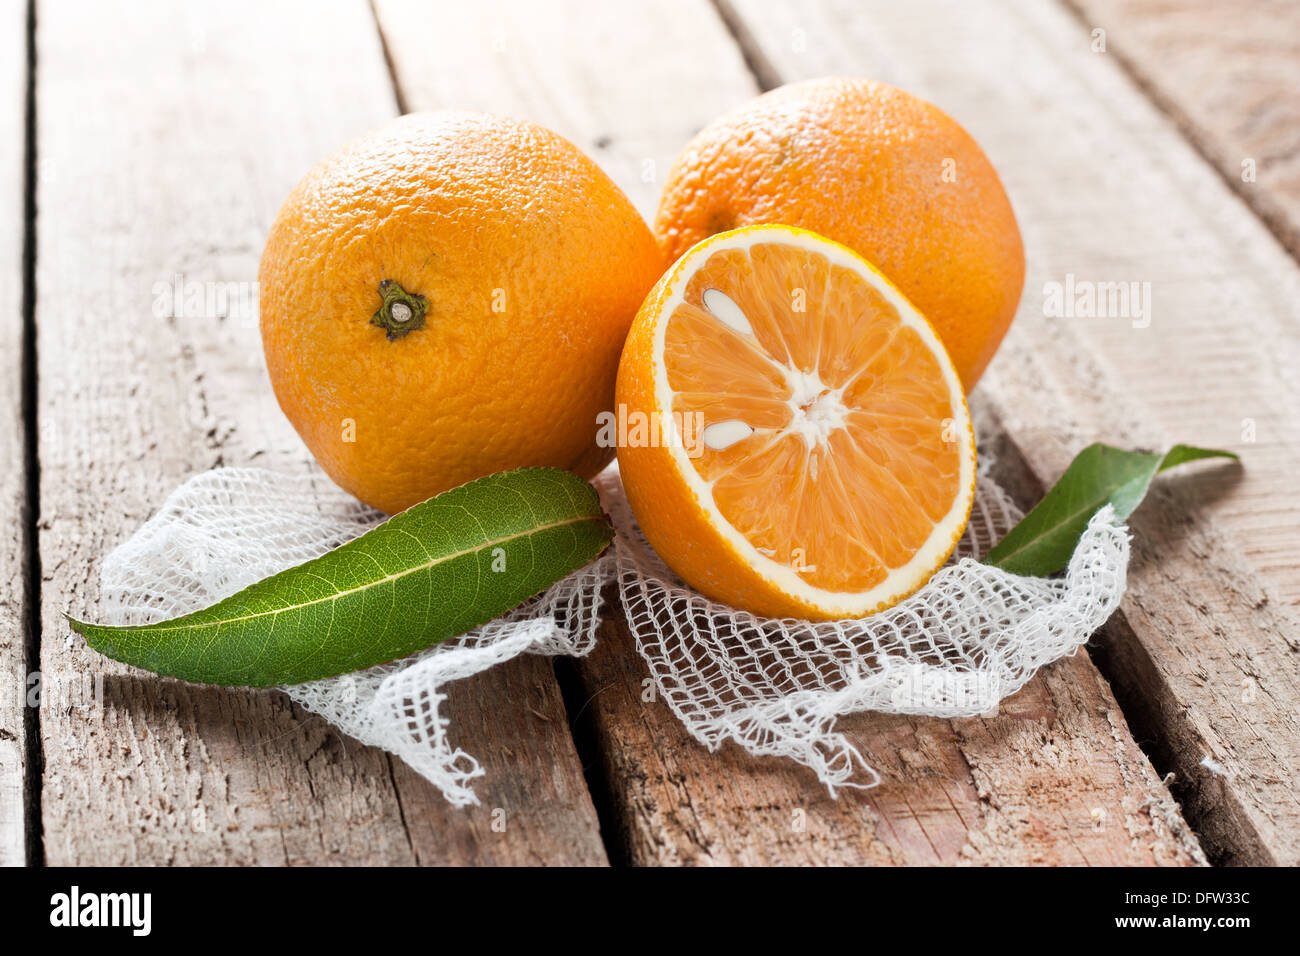 Raw natural oranges on wooden table - Stock Image